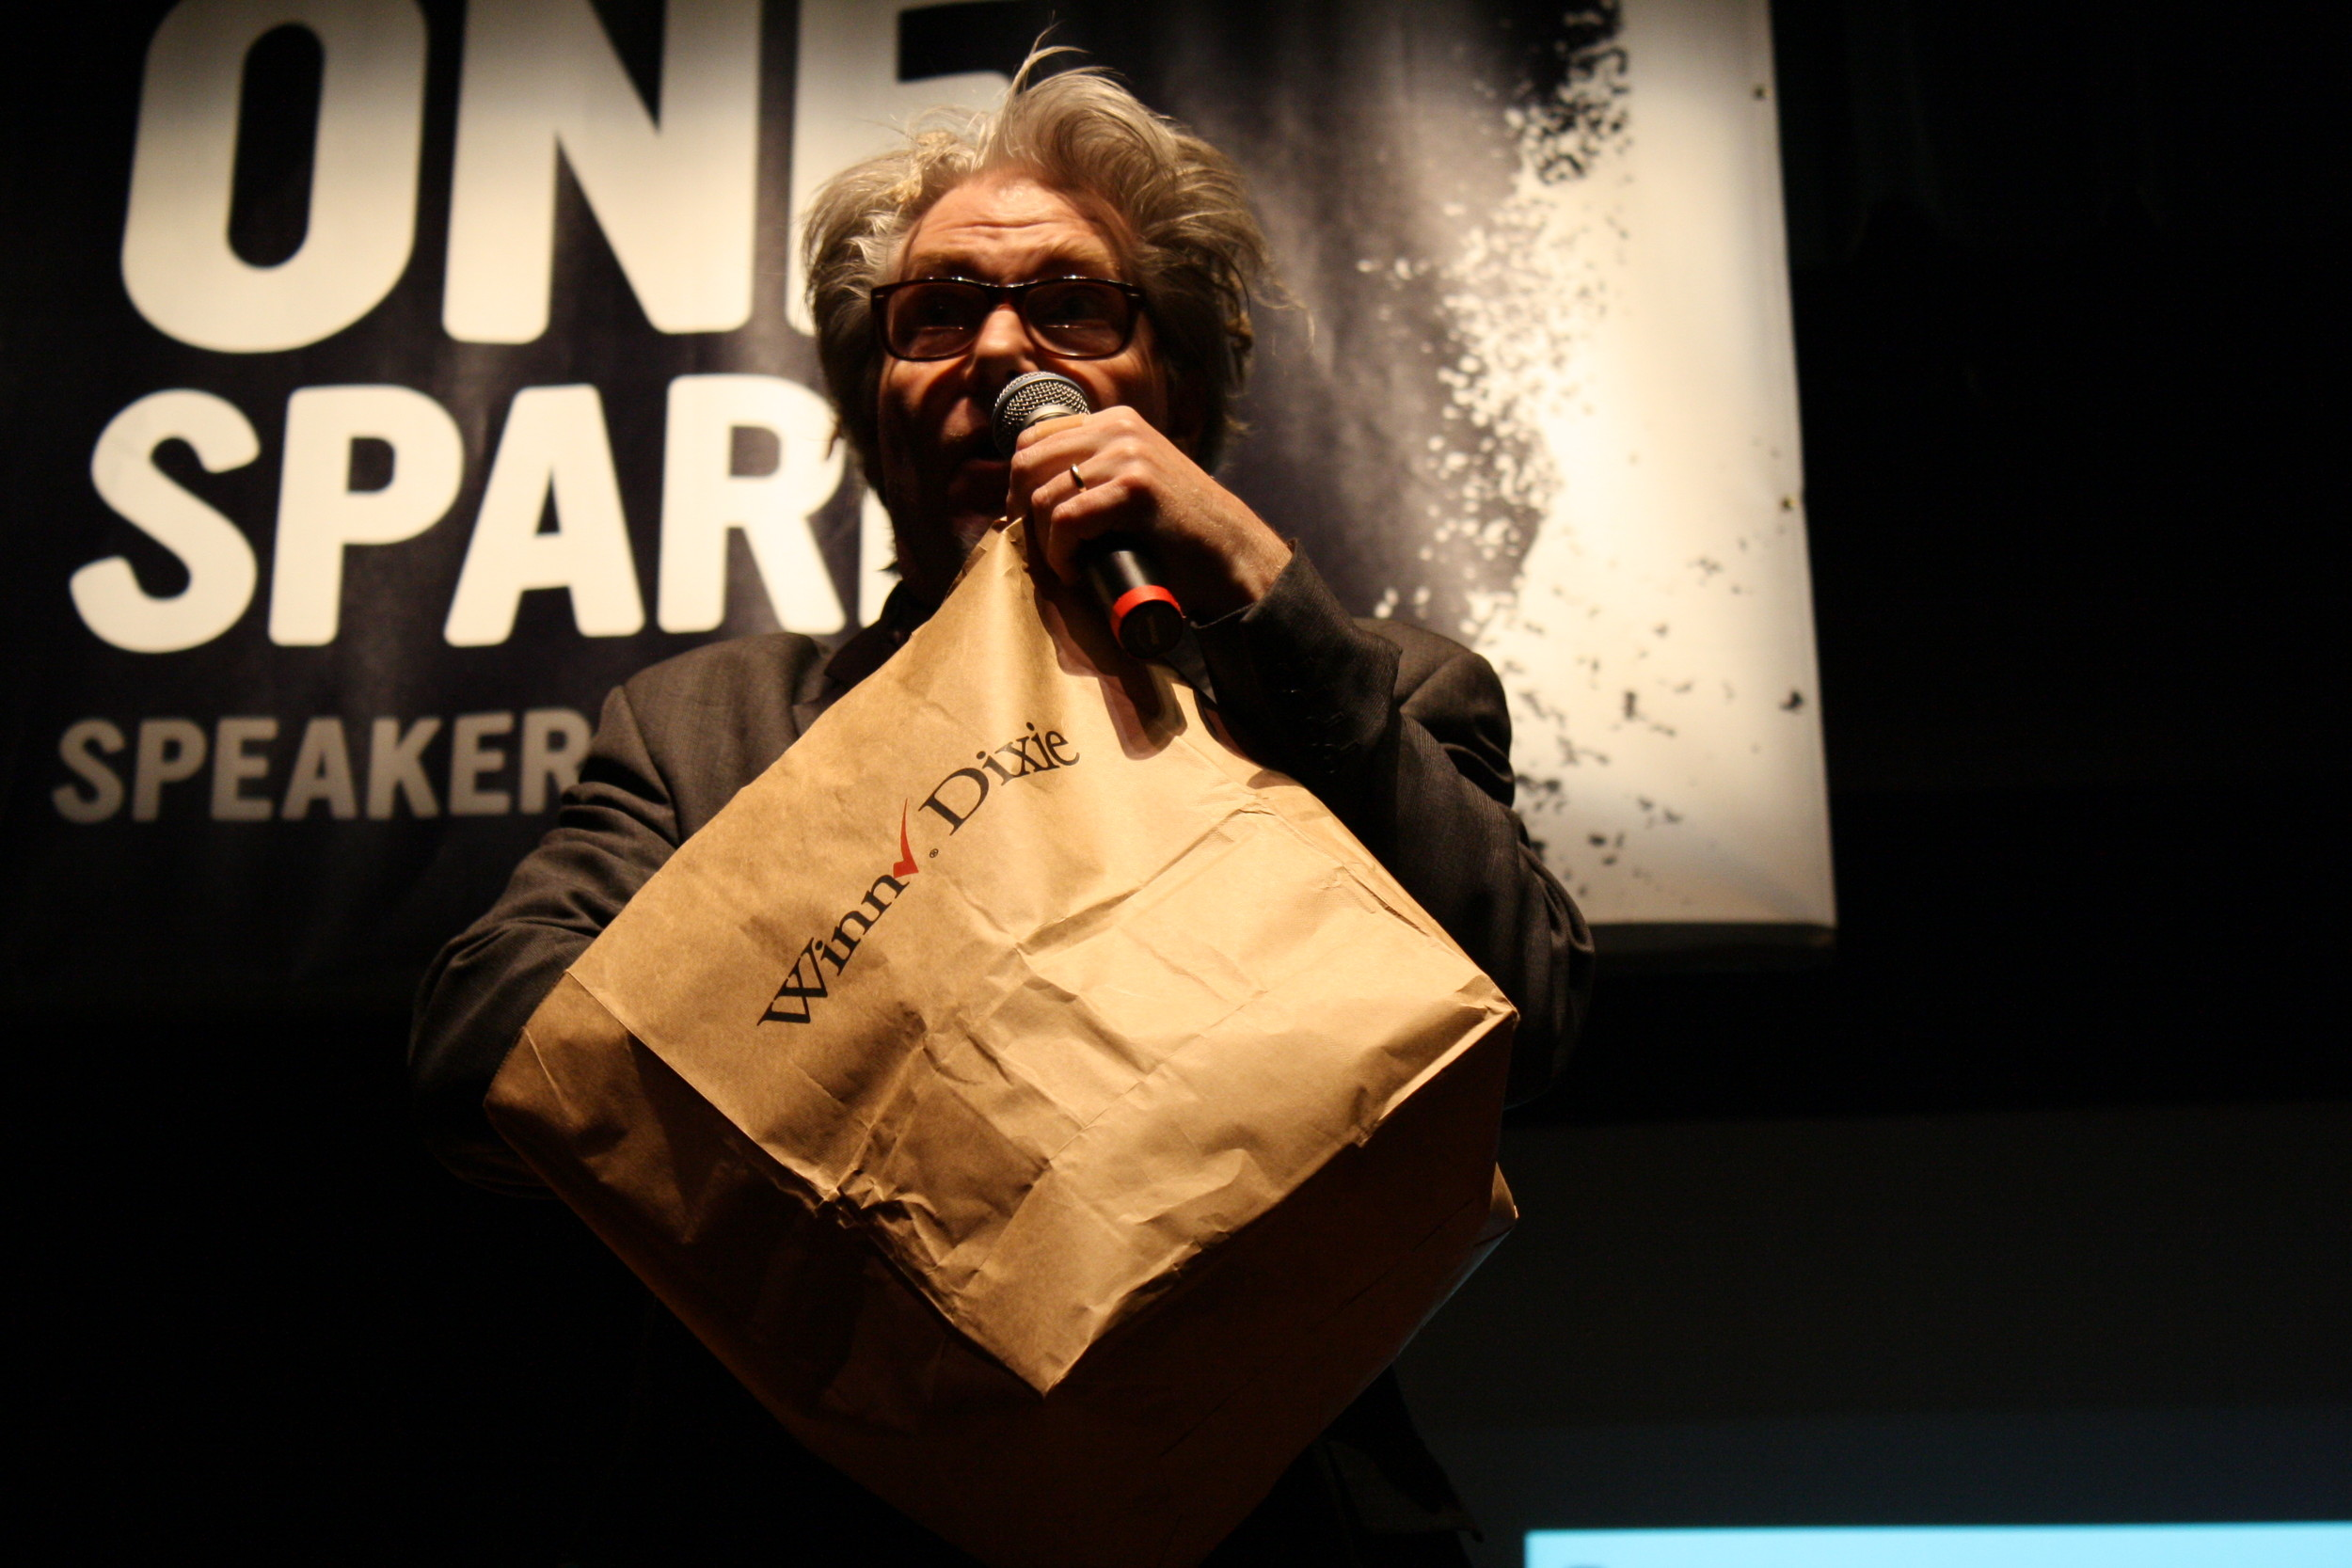 Martin Atkins throws blueberry muffins into the crowd at his One Spark Speaker Series talk.